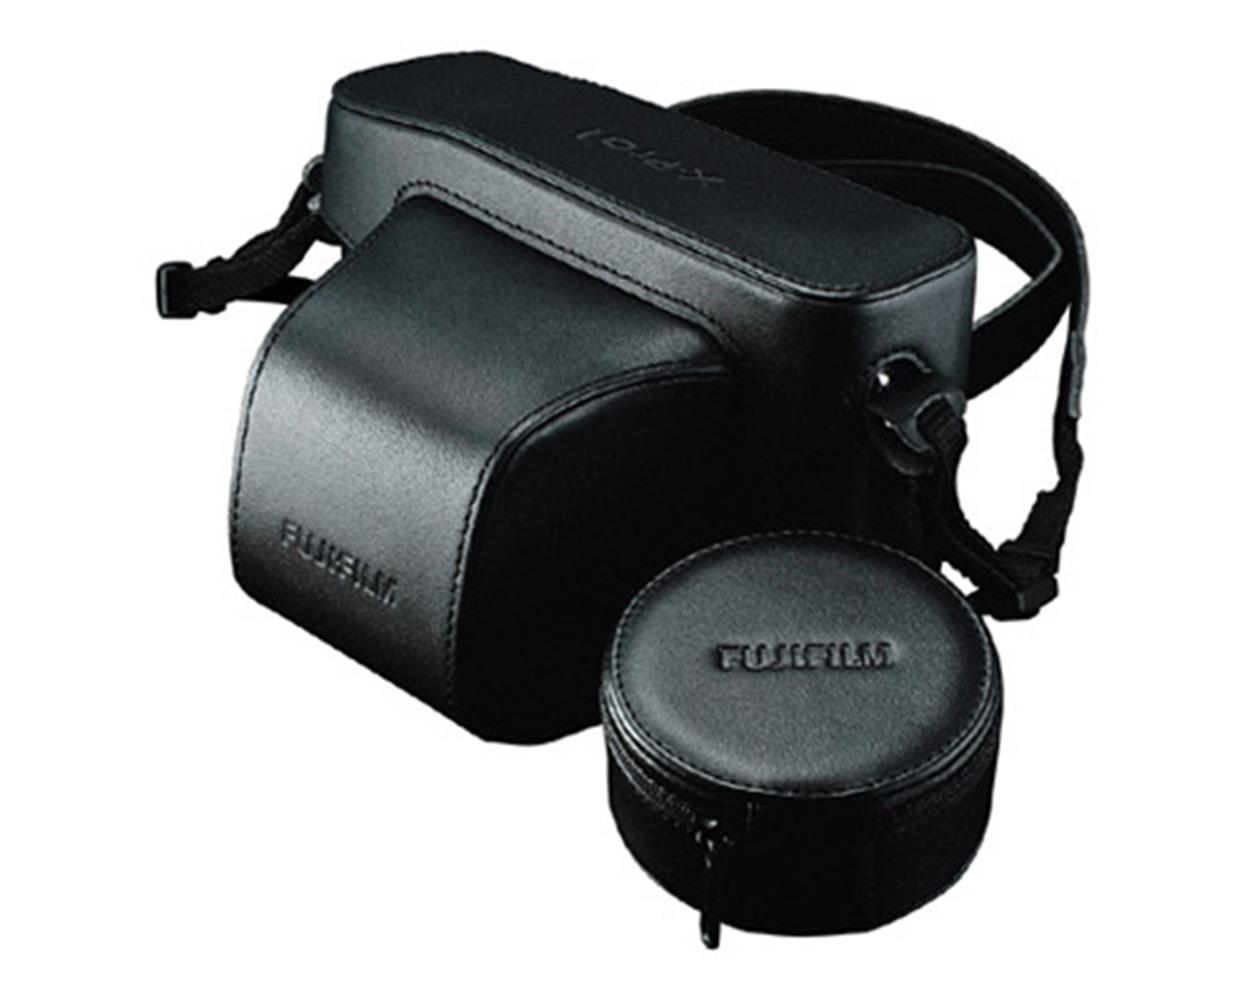 FUJI X-PRO-1 FITTED LEATHER CASE